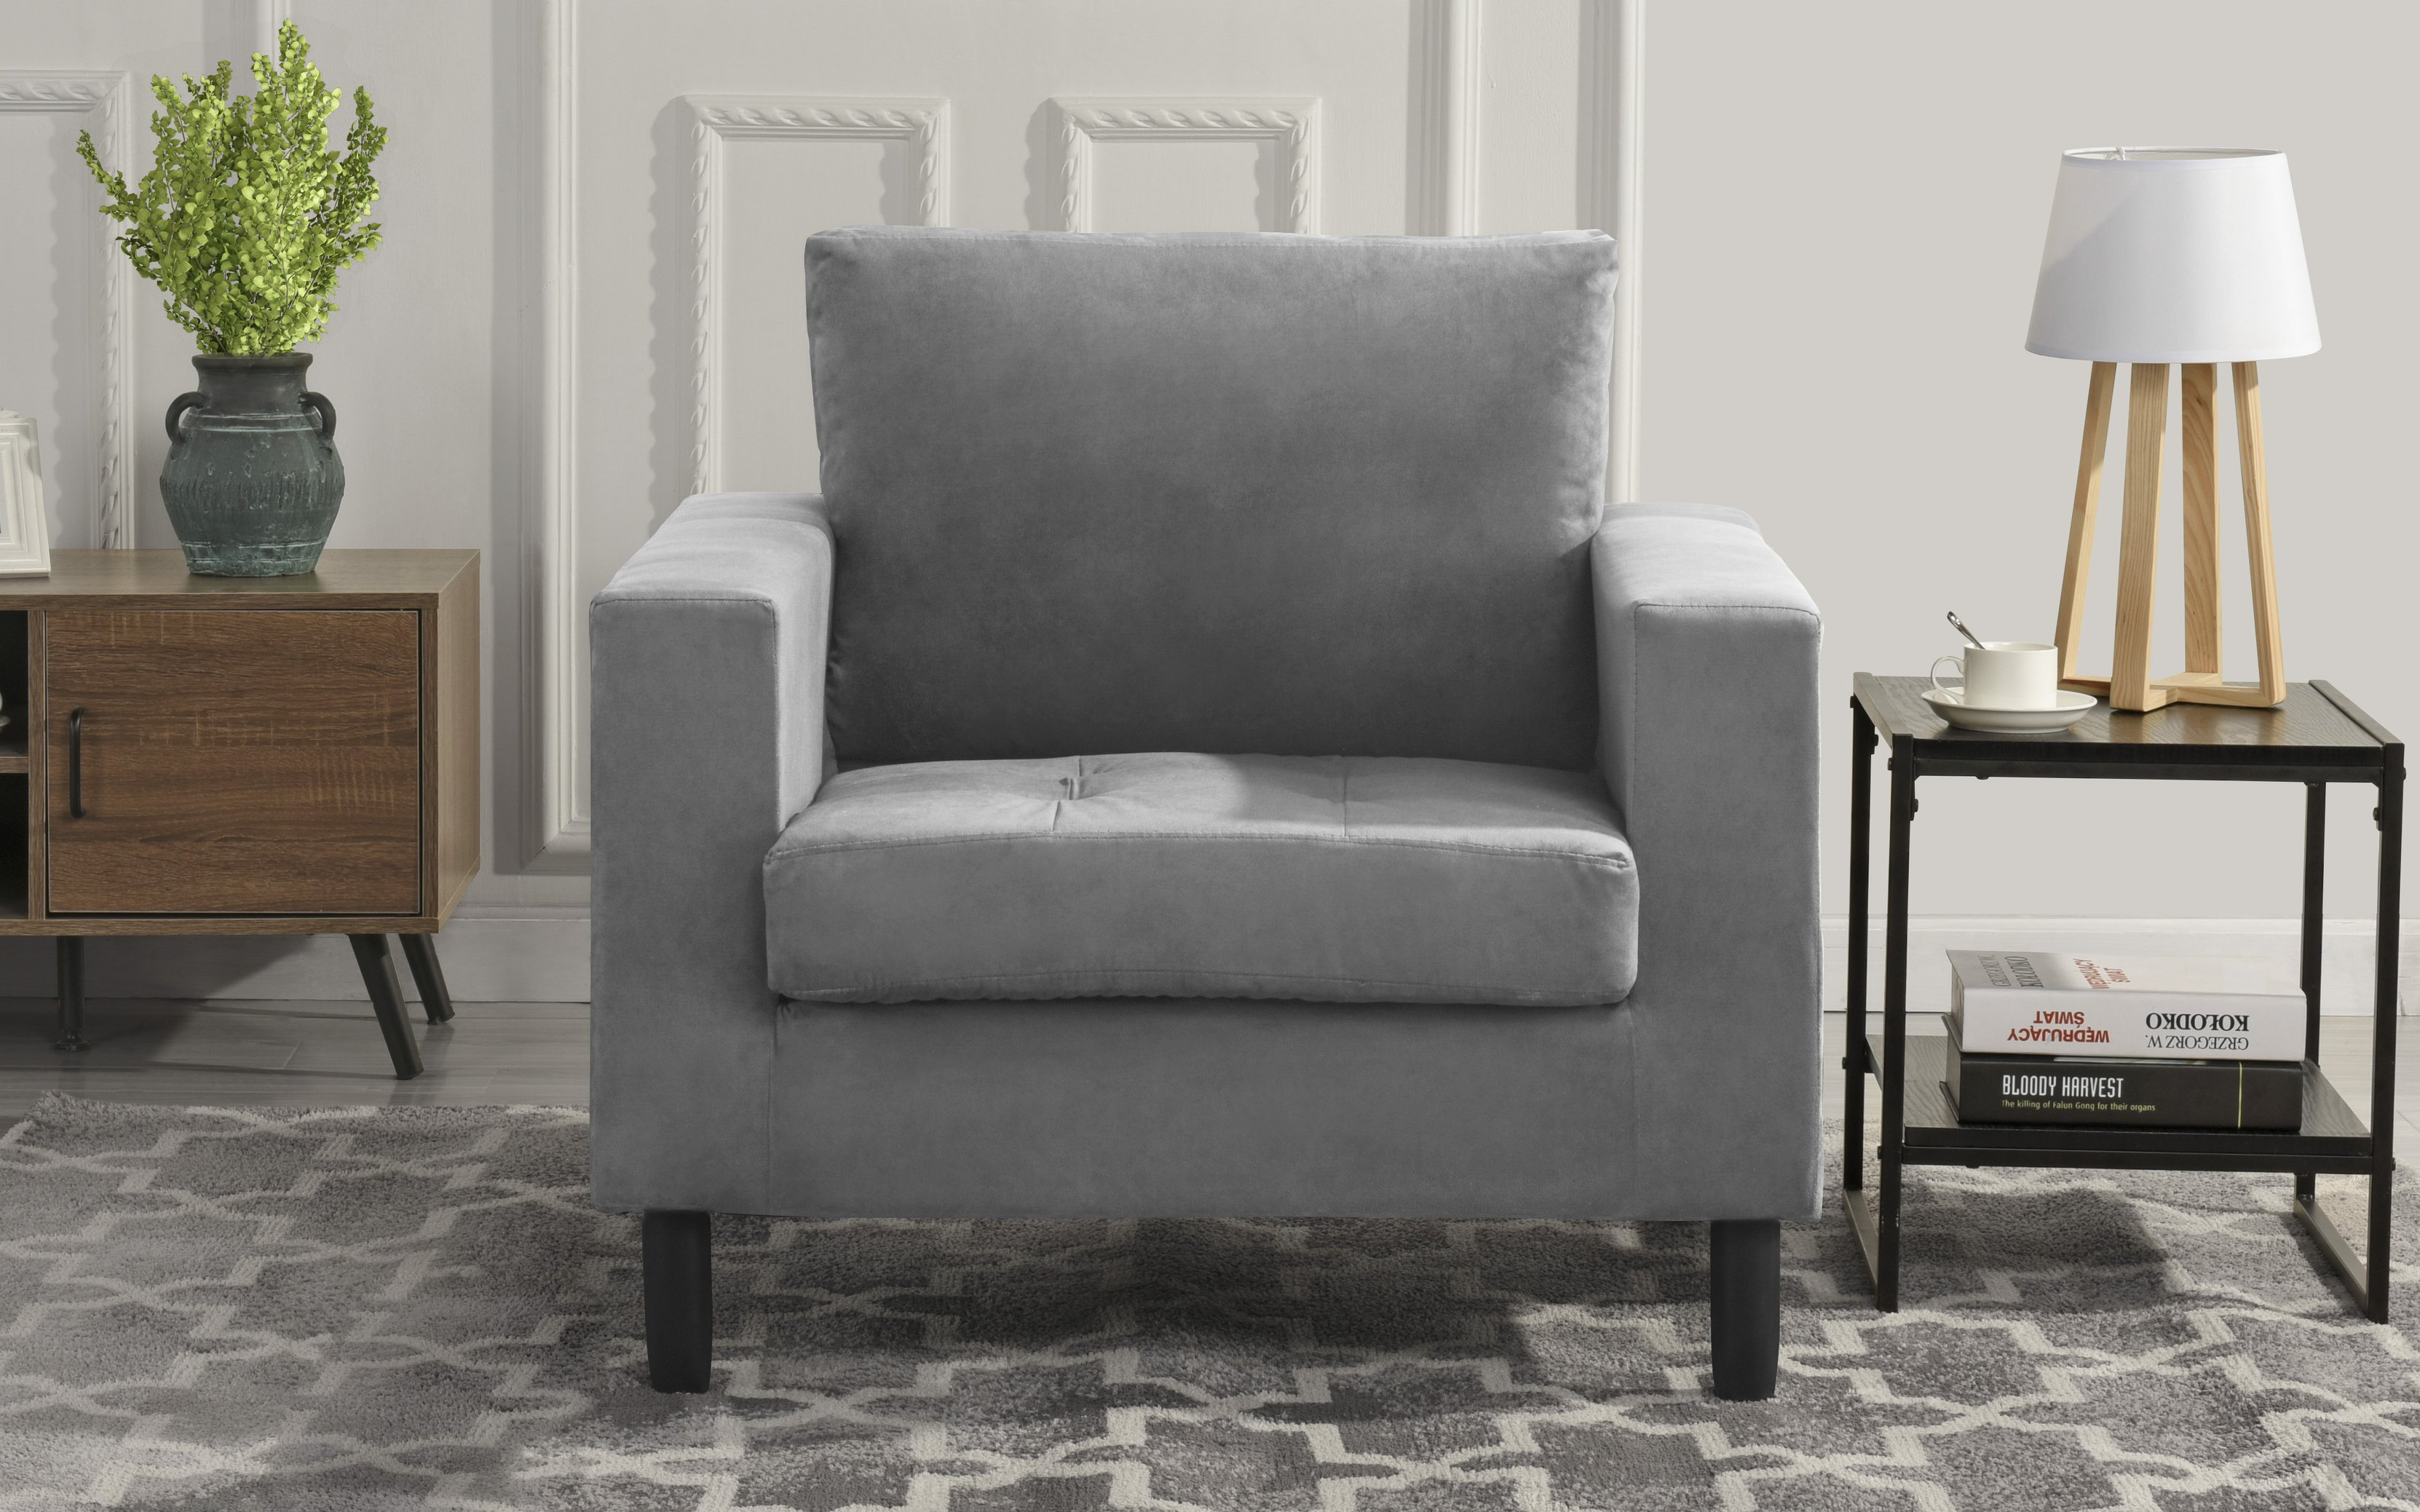 Details About Mid Century Modern Tufted Velvet Armchair Living Room Chair Grey